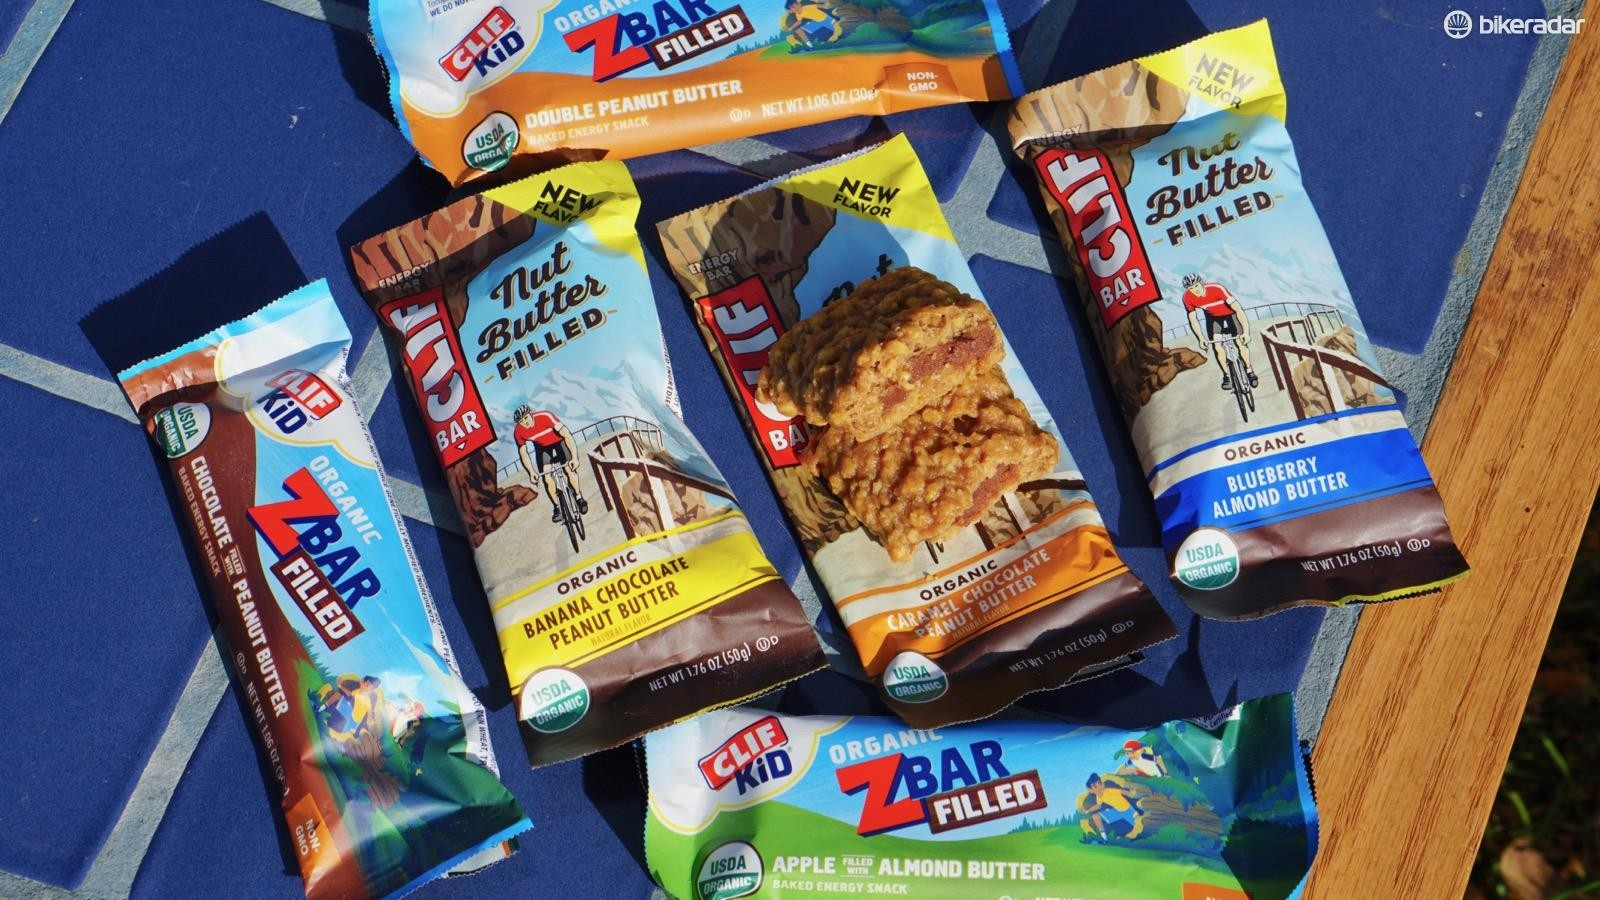 Clif bars, packed full of nutty, buttery goodness